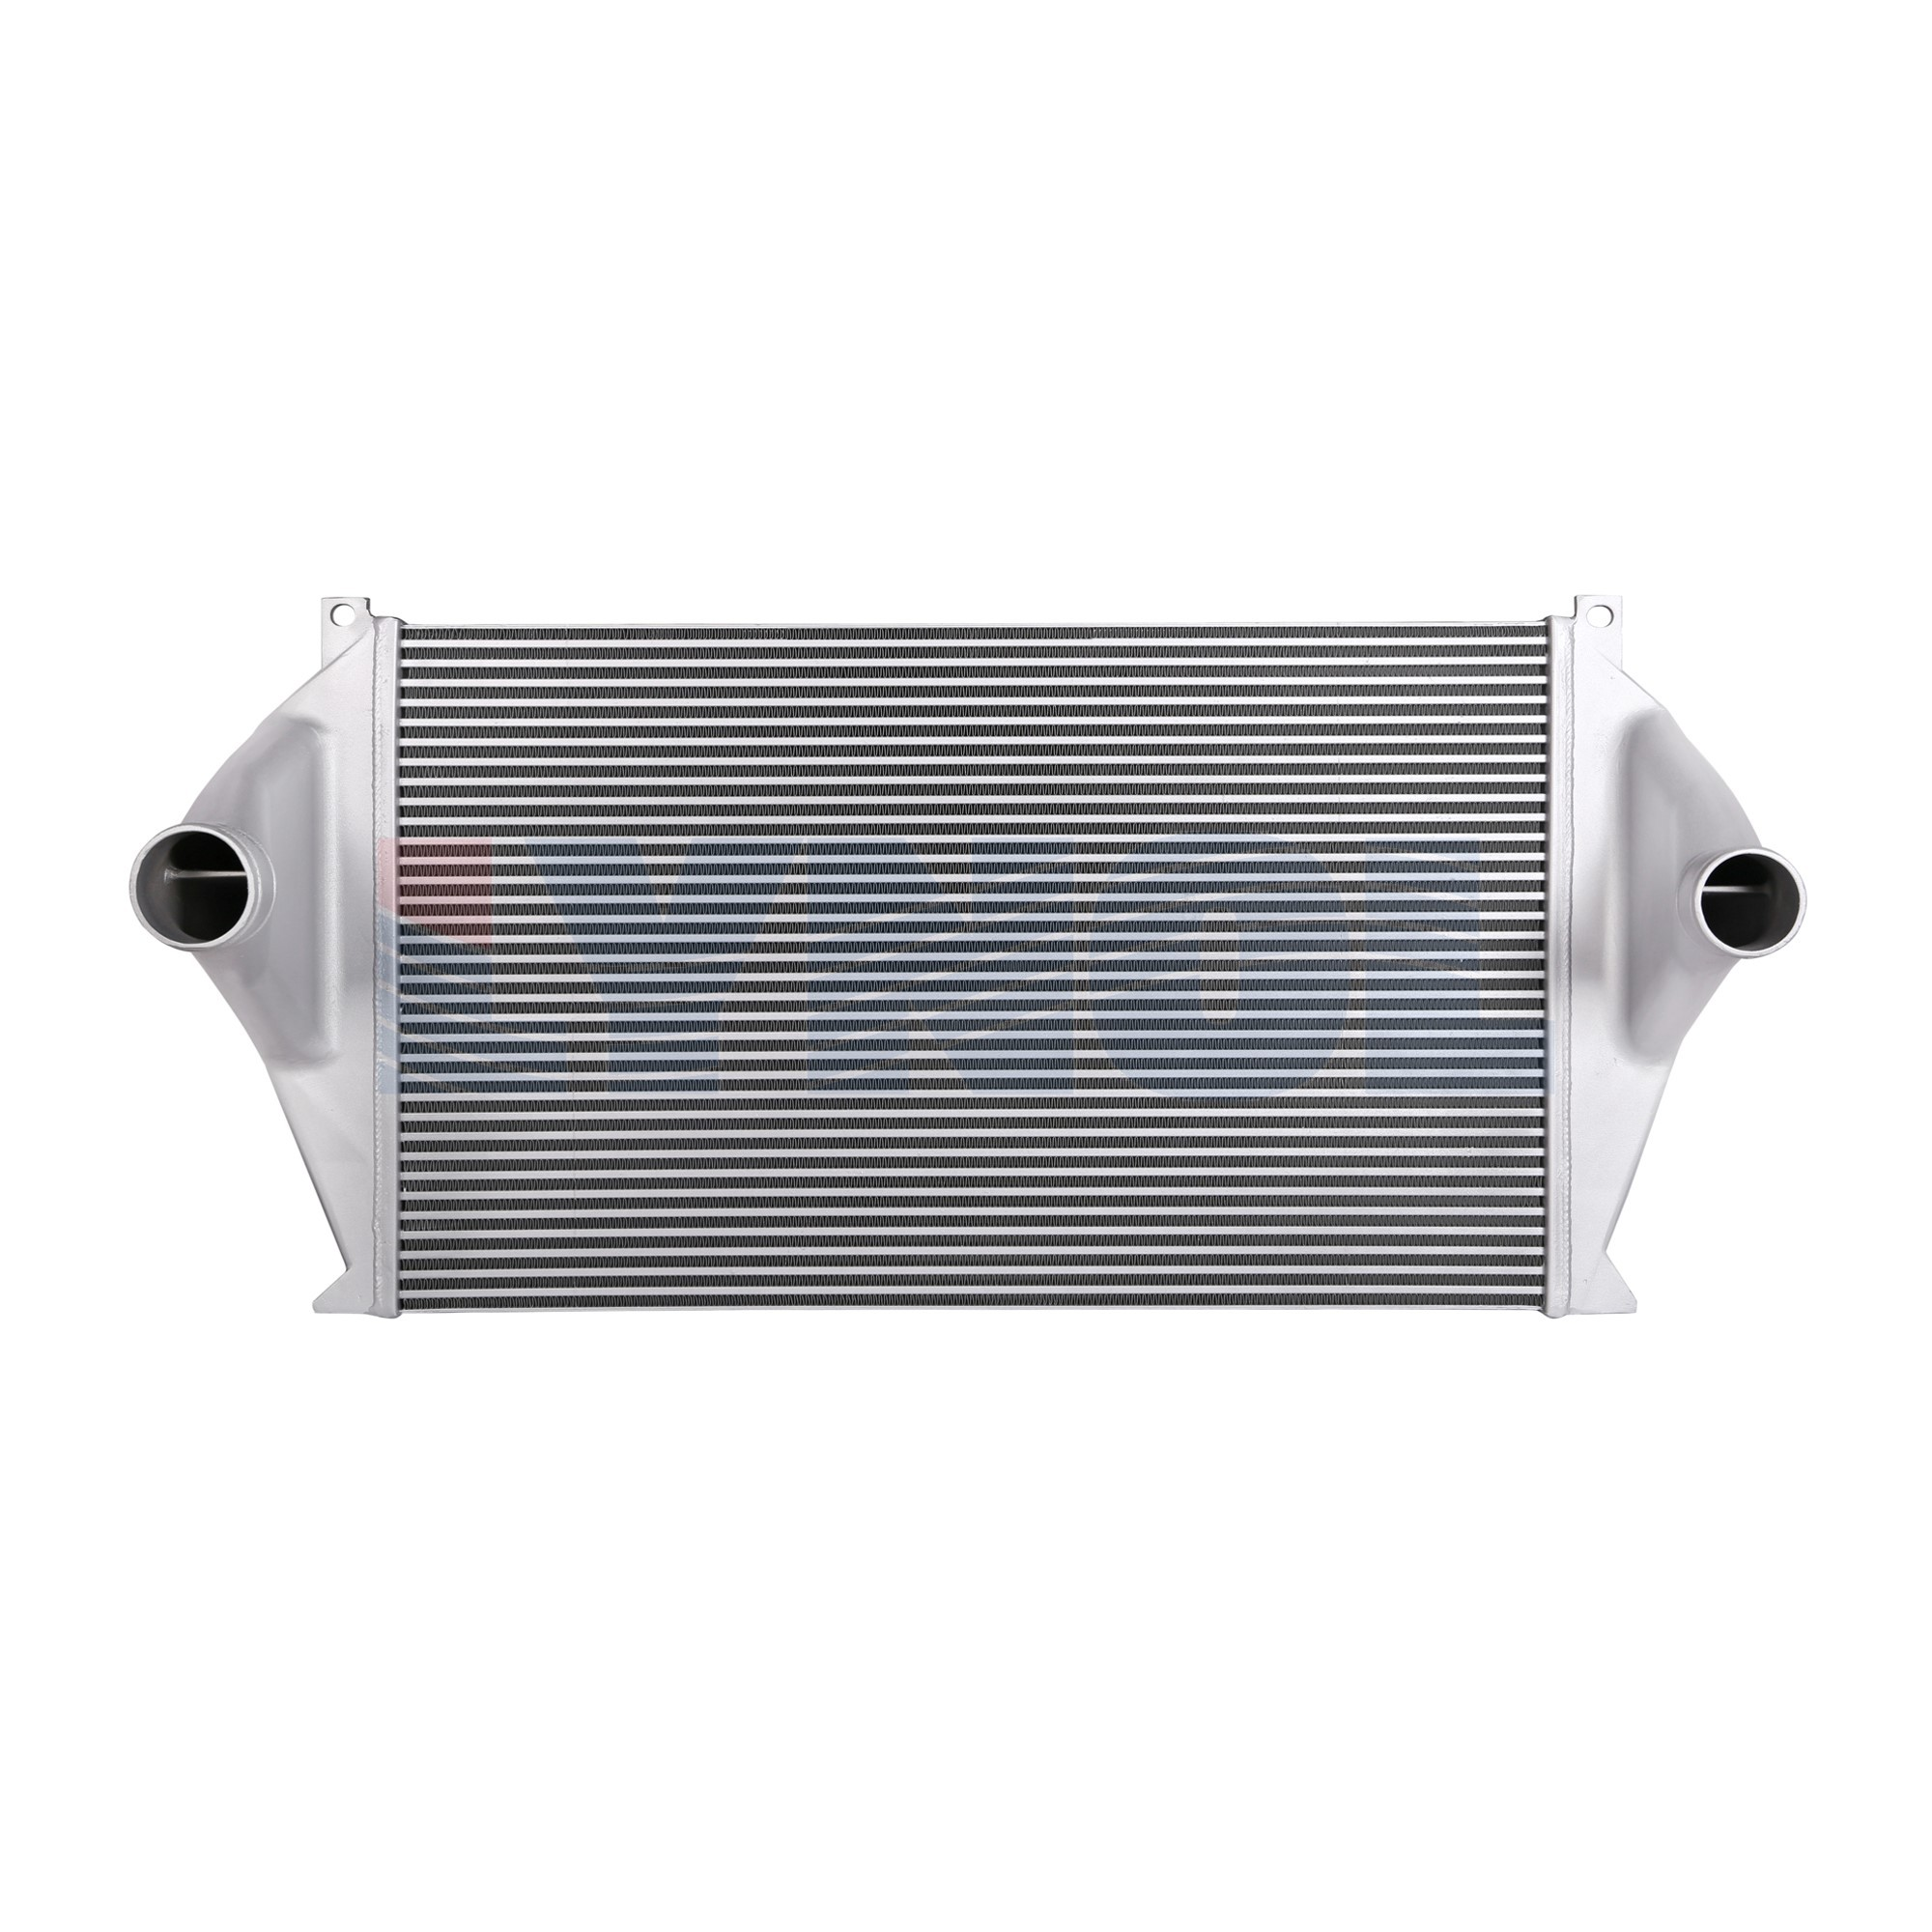 2408-012 - International / Navistar Charge Air Cooler